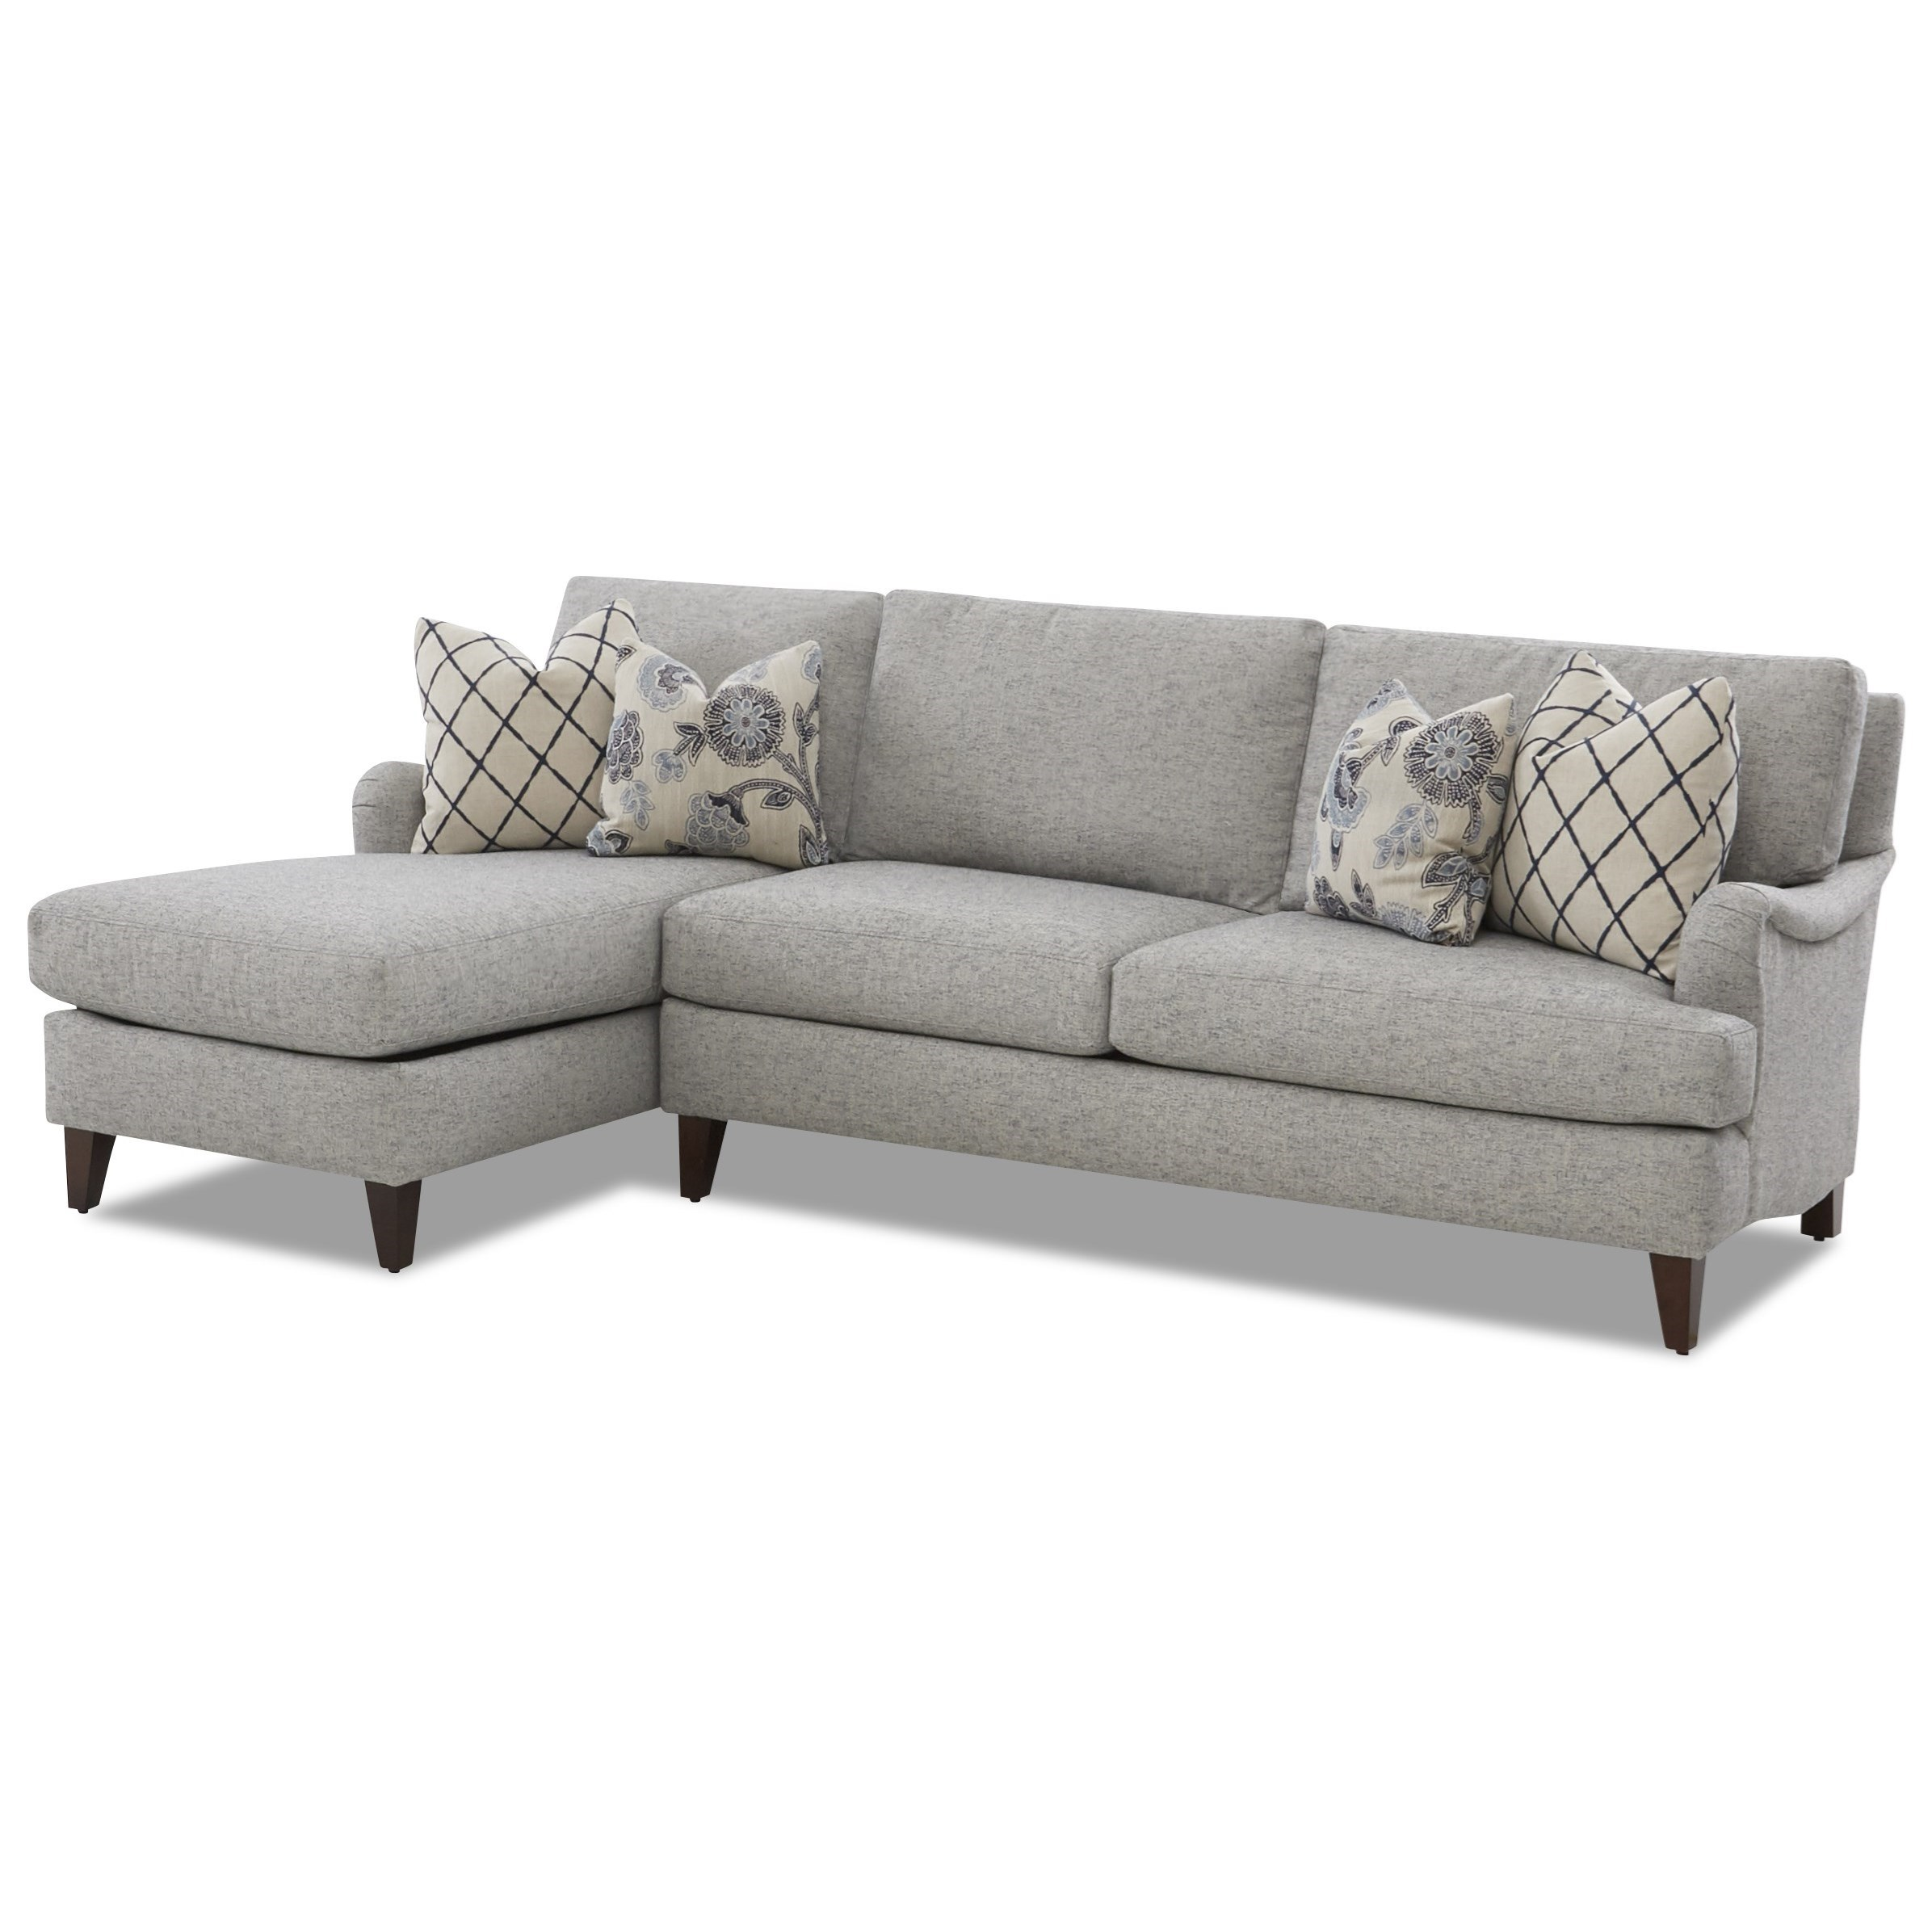 Alden Sofa Chaise by Klaussner at Catalog Outlet